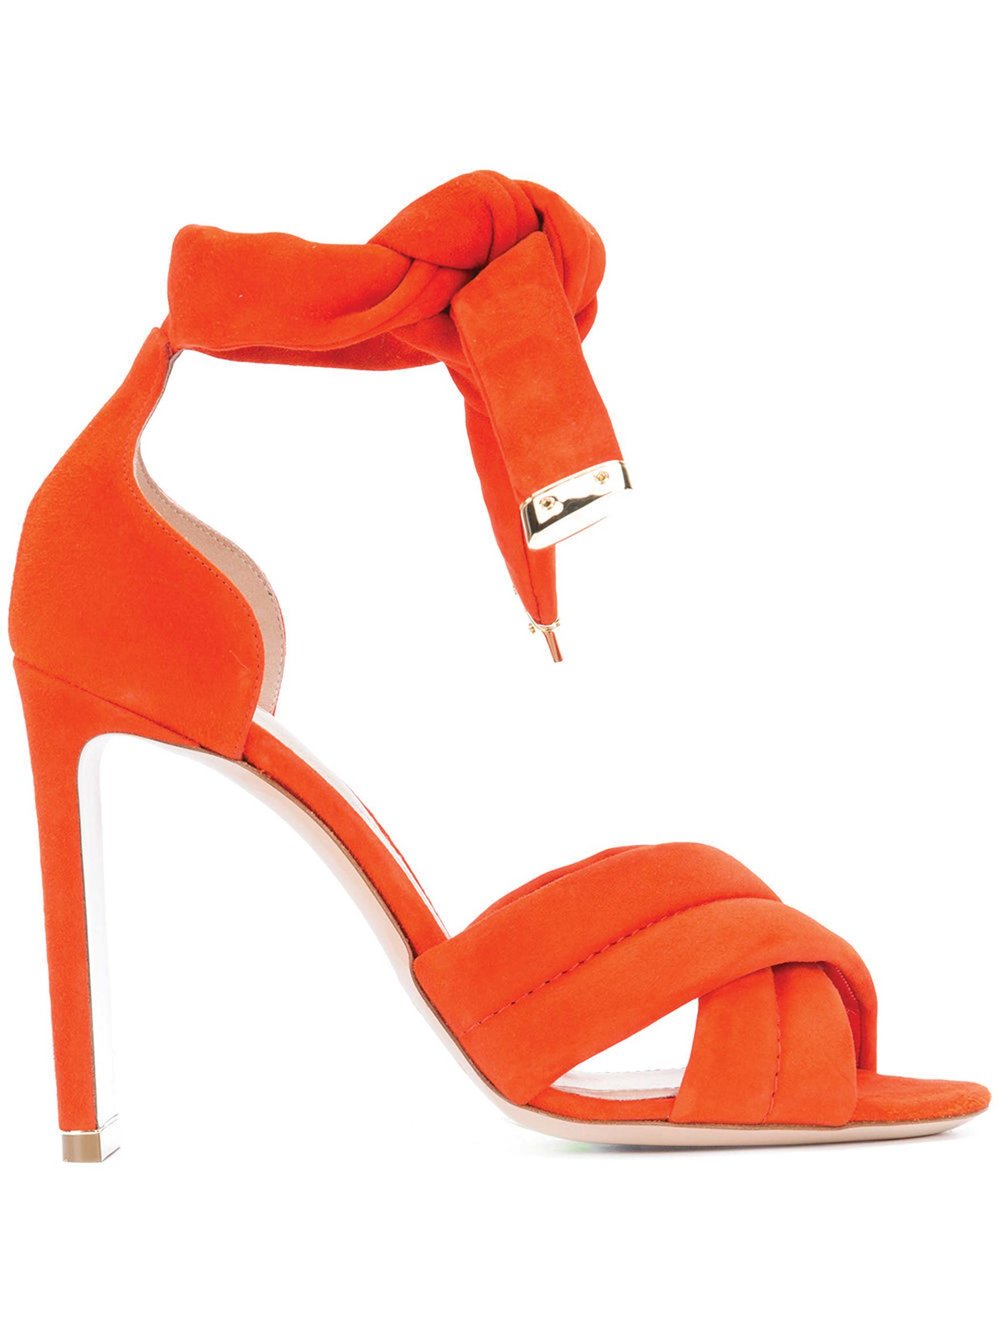 105mm Ziggy Sandals by Nicholas Kirkwood $1,250